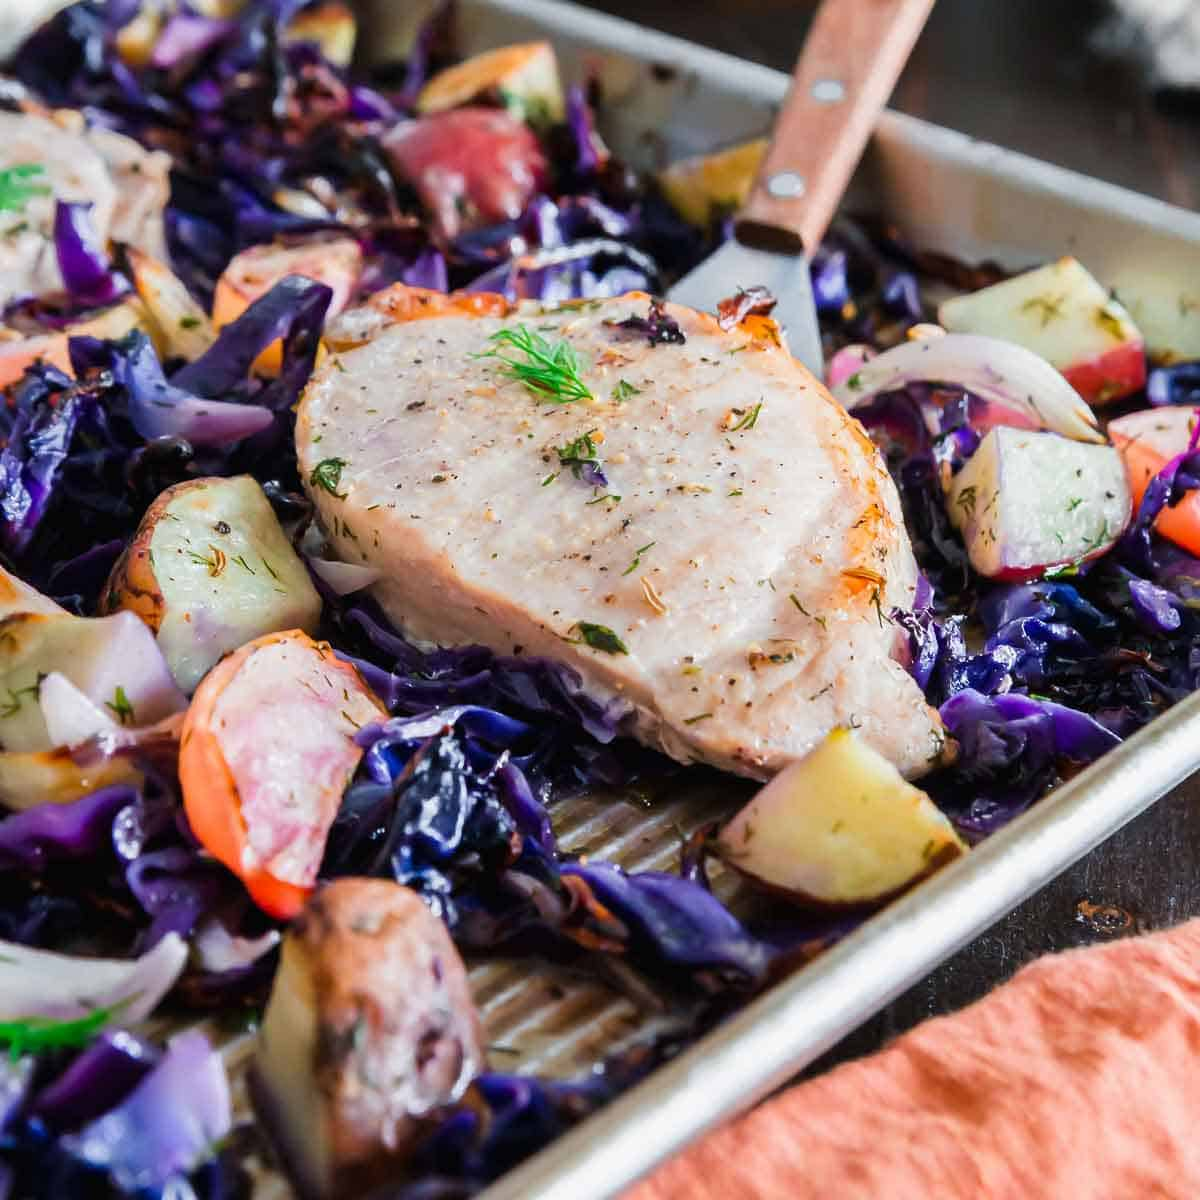 Cooking pork chops on a baking sheet along with all the sides at one time is the easiest way to make a complete dinner in no time.